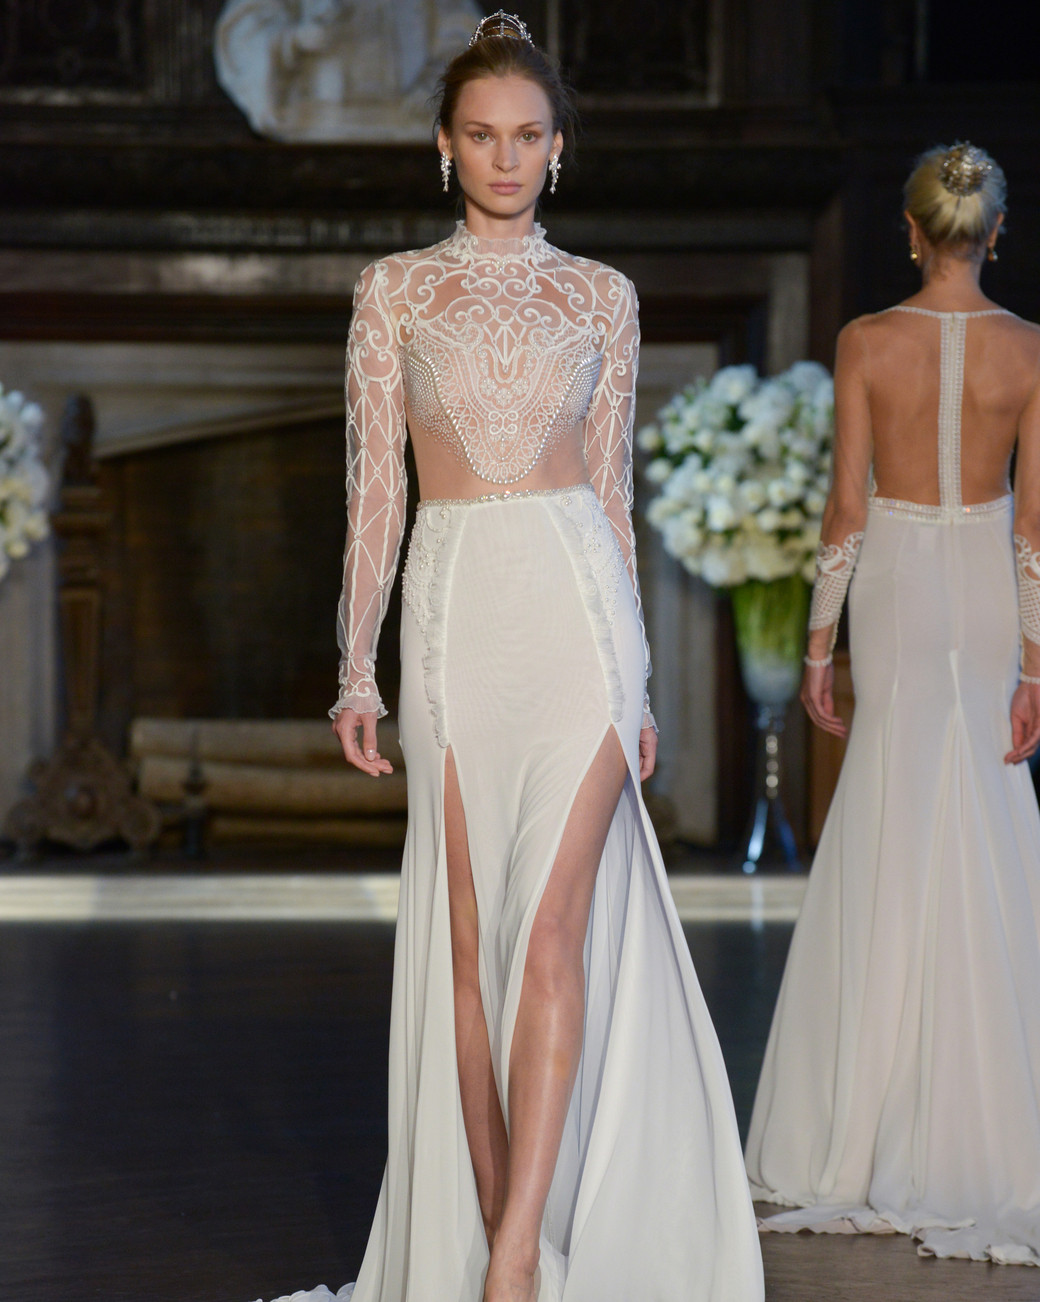 Virtual Try On Wedding Dress Of Hottest Trends From Bridal Fashion Week Fall 2016